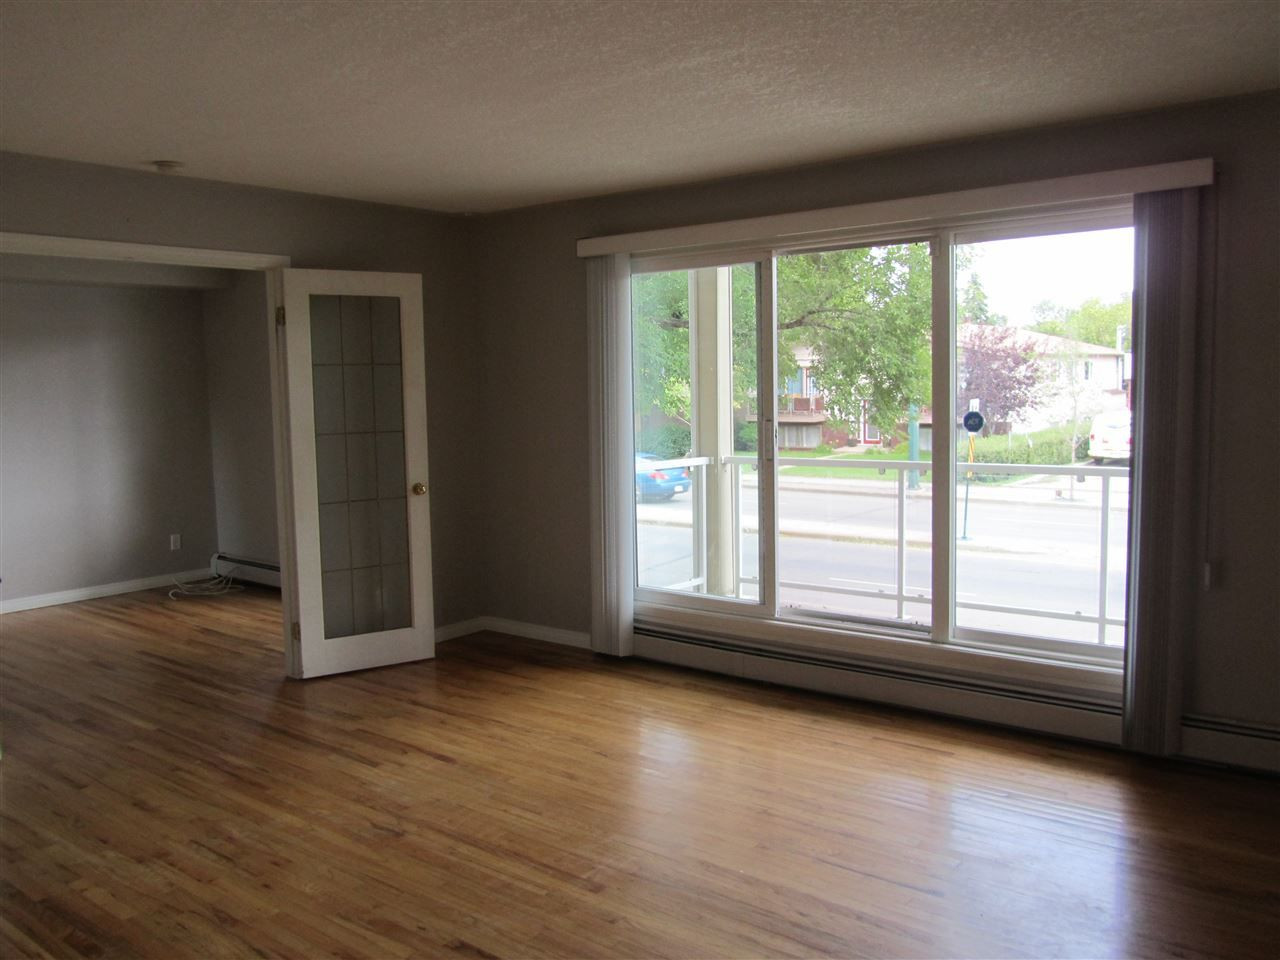 hardwood flooring sale kitchener of central edmonton properties for sale page 4 throughout 16 11008 124 street in edmonton zone 07 condo for sale mlsa e4094367